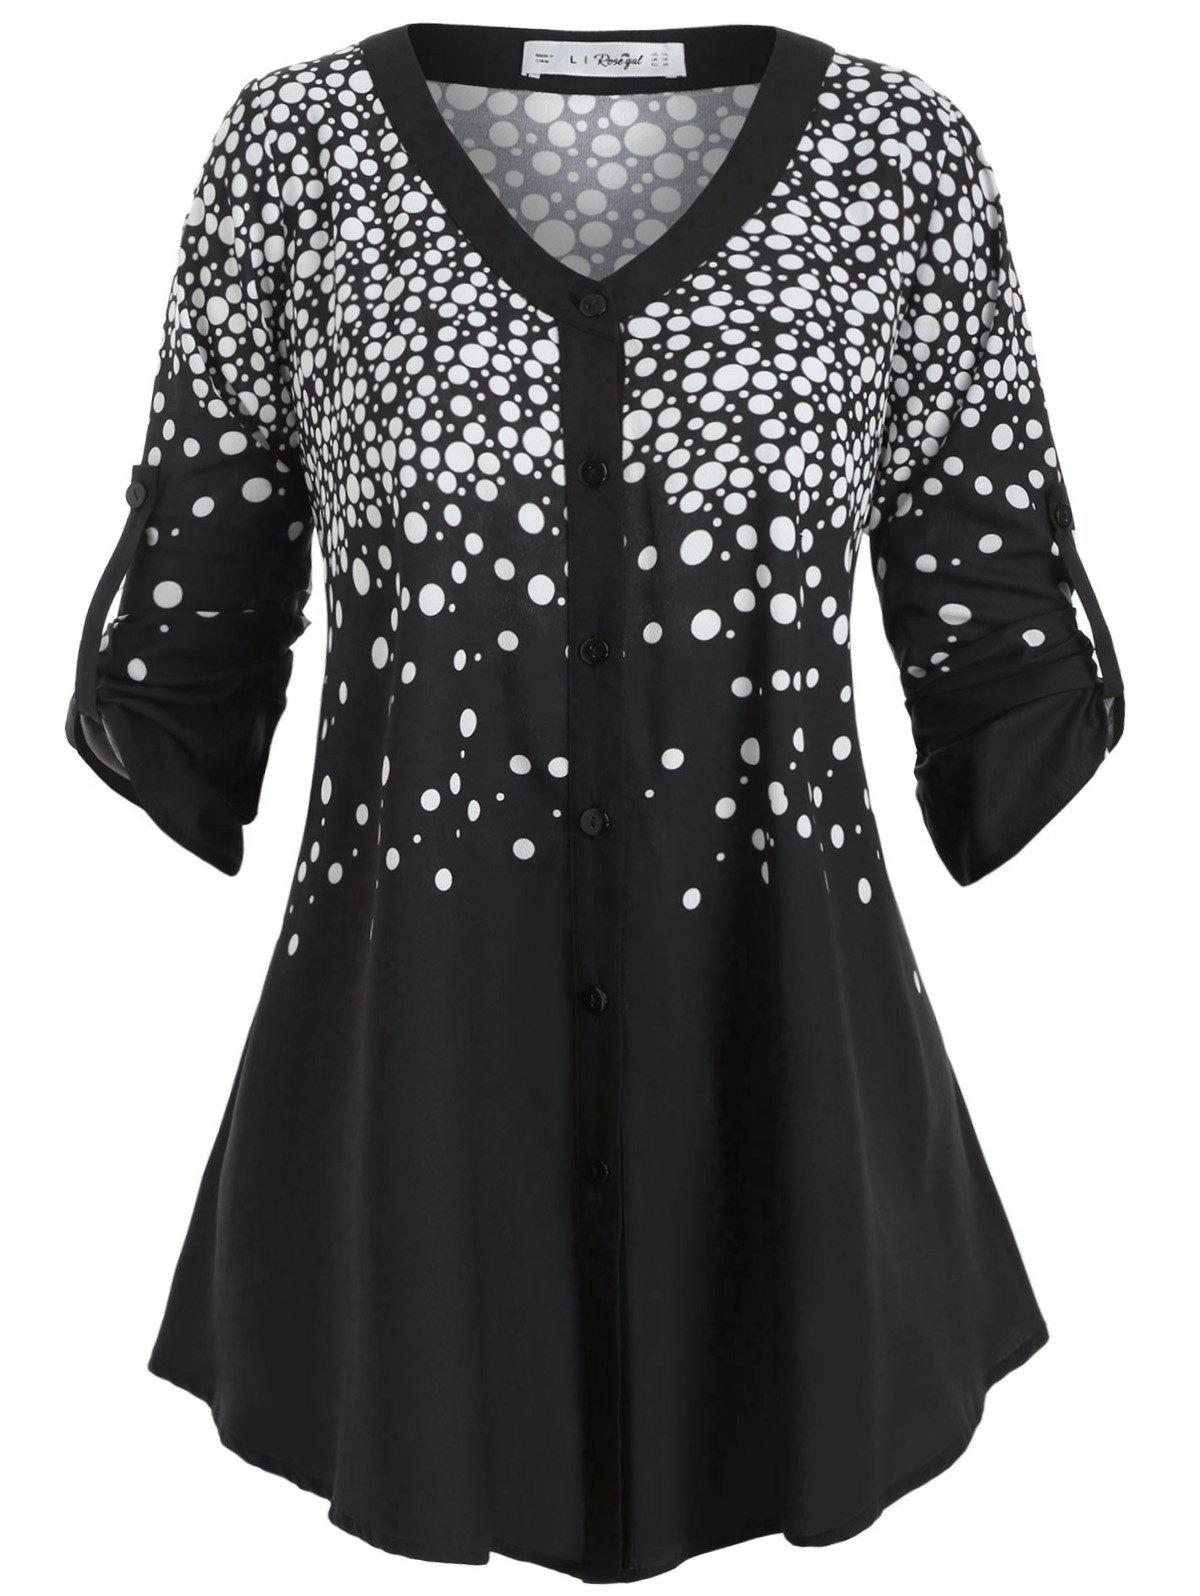 Button Up Buttoned Tabs Polka Dot Plus Size Top - BLACK 1X